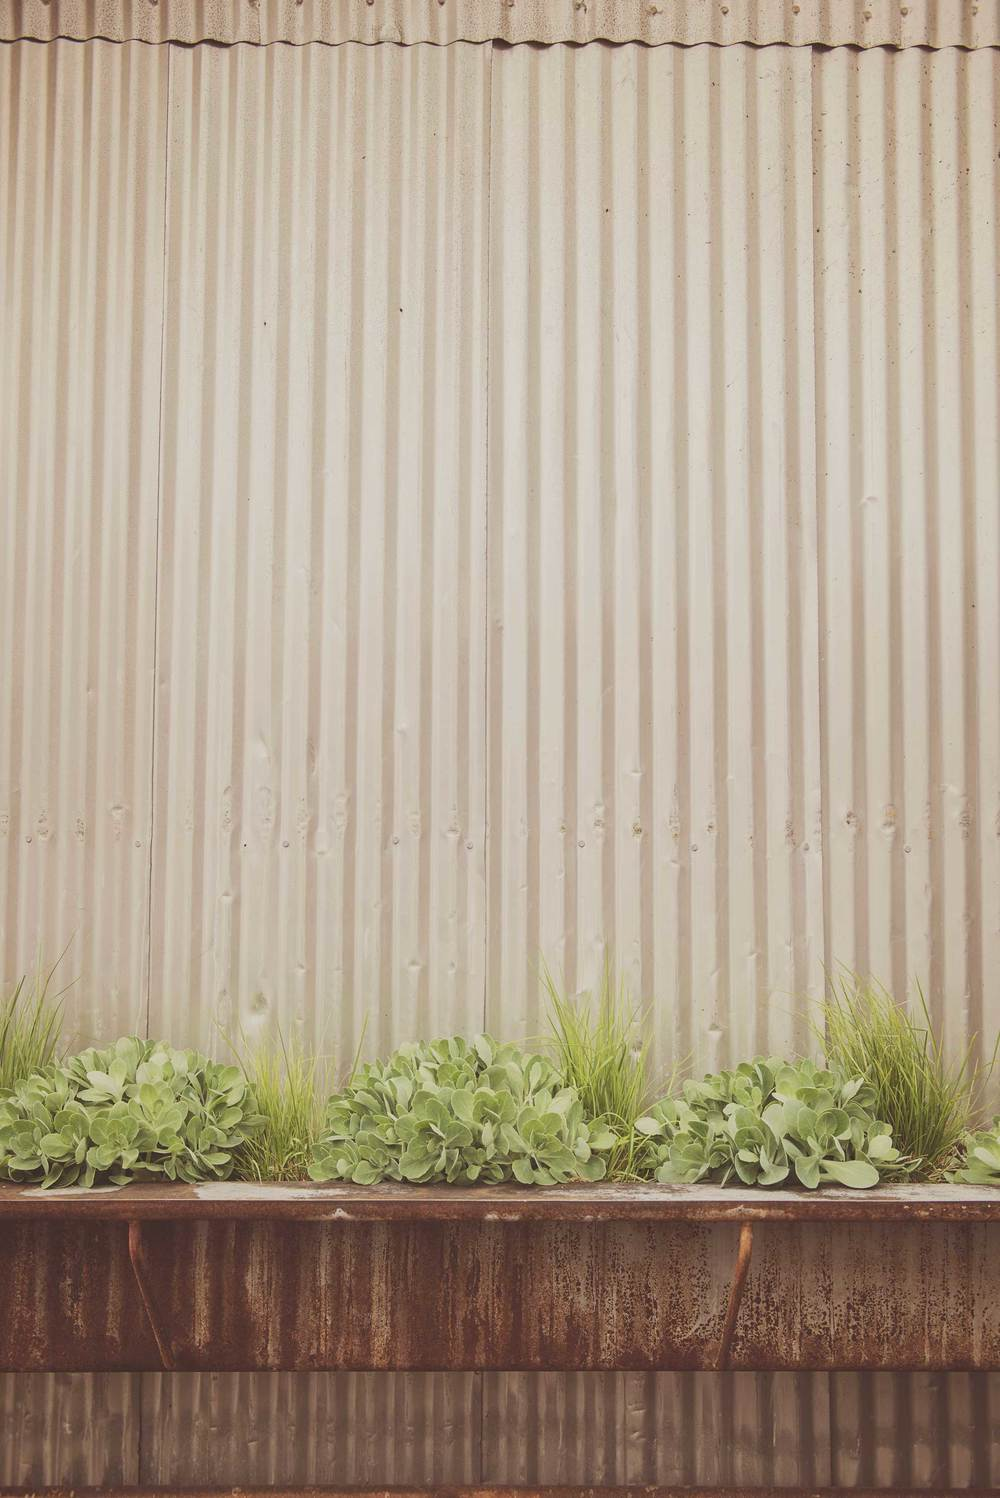 Salvaged Industrial Container with Drought-Tolerant Plantings